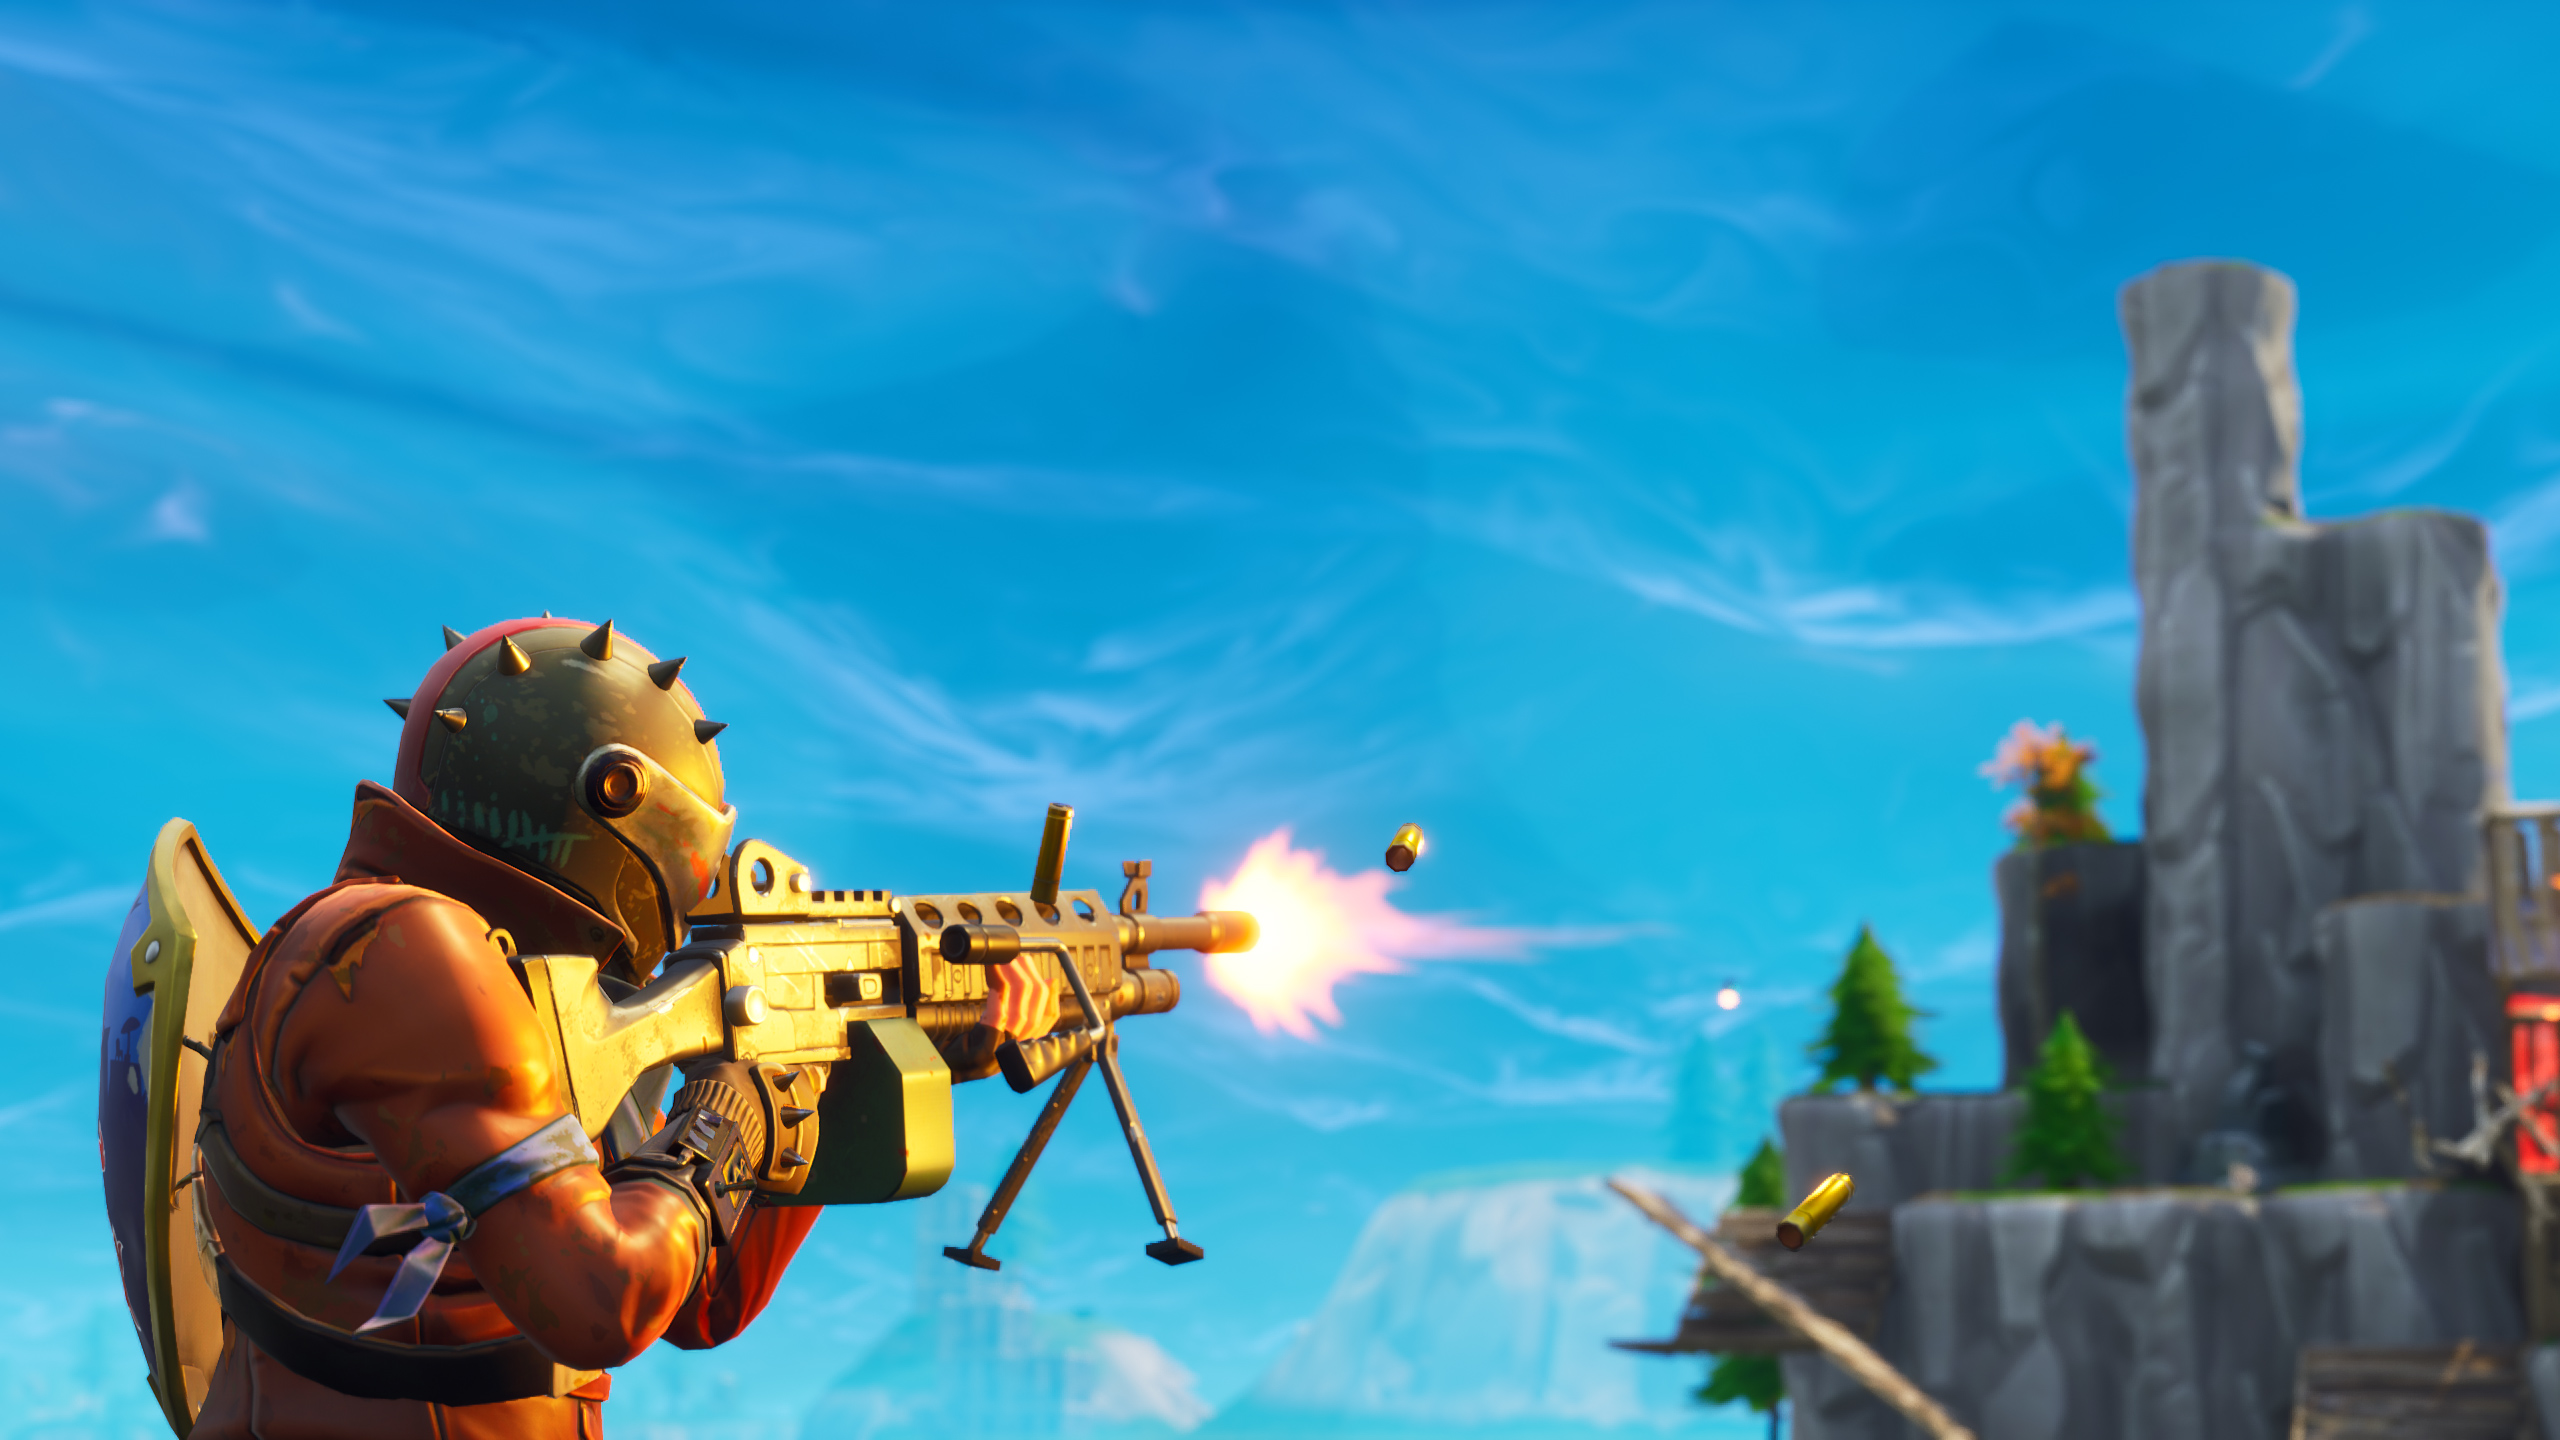 Fortnite Hd Wallpaper Background Image 2560x1440 Id